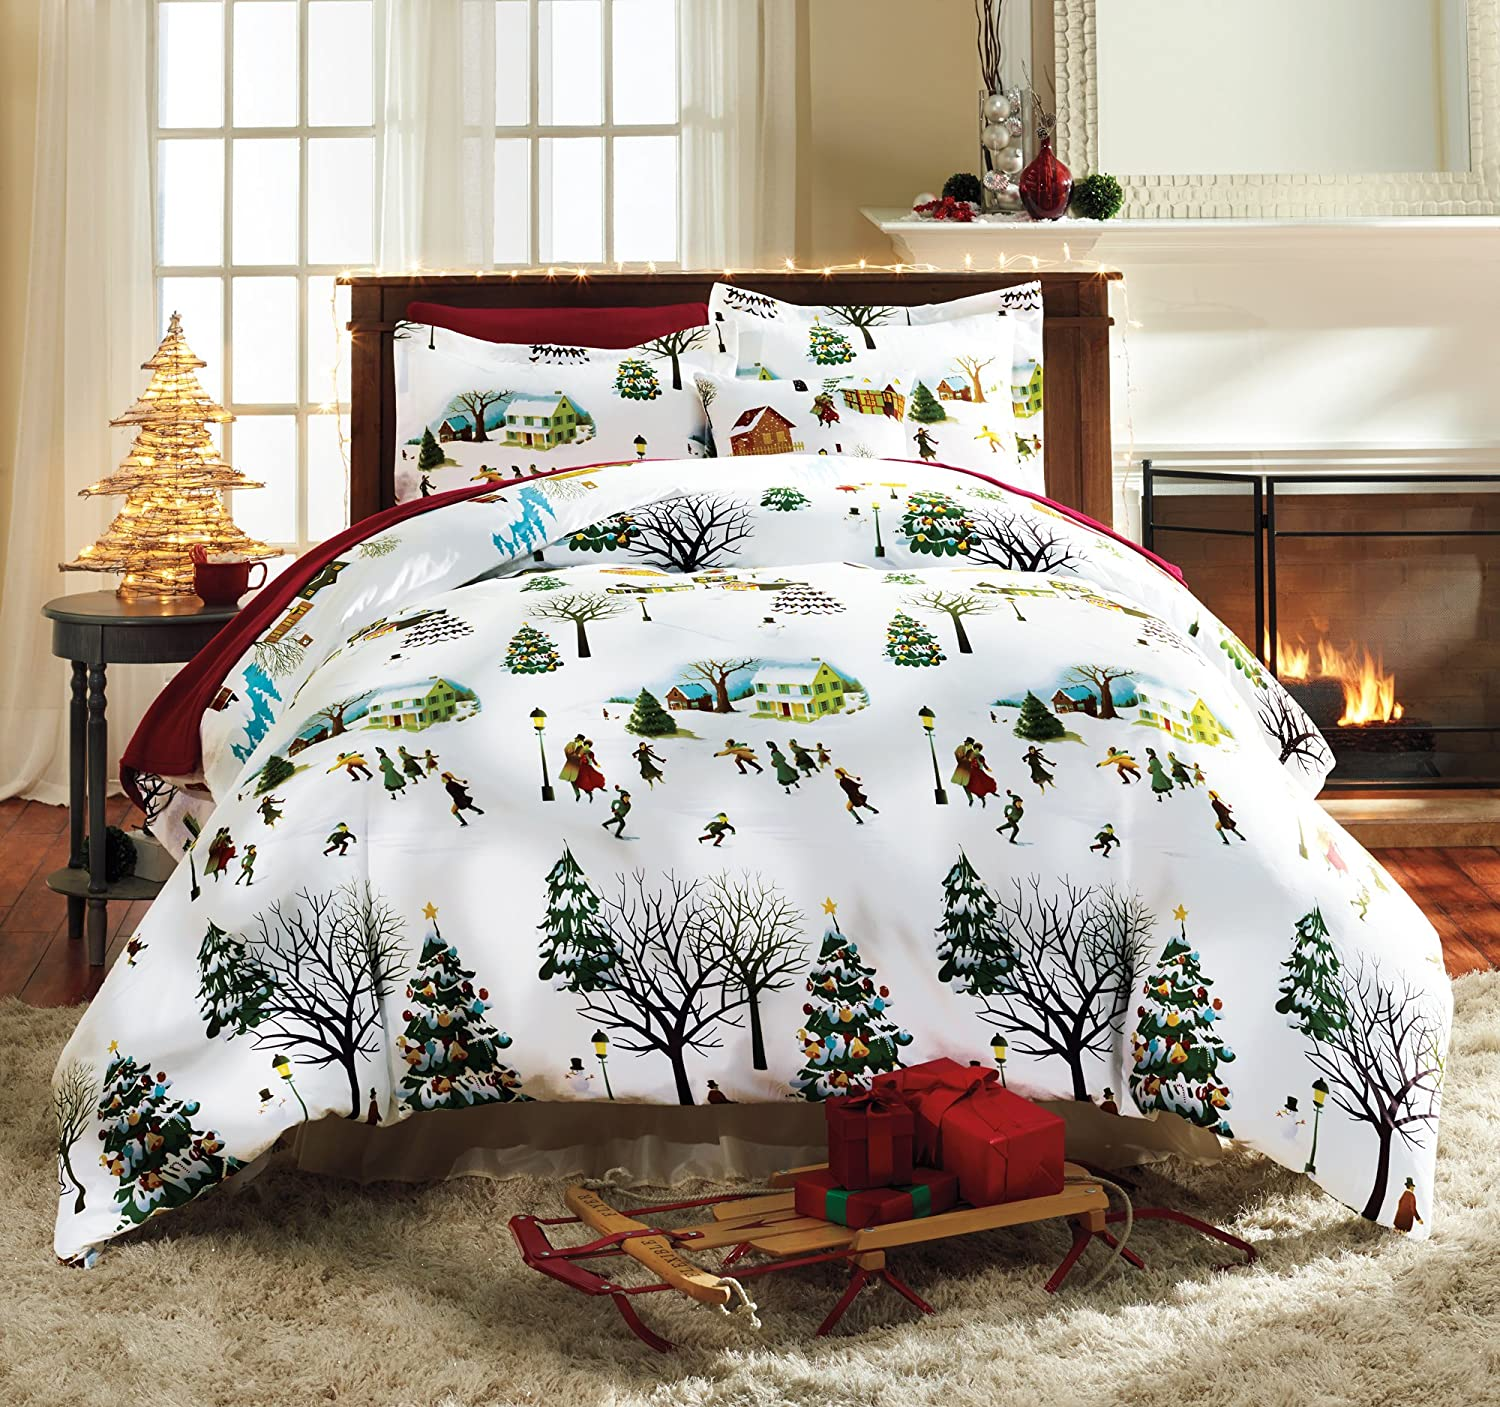 The Paragon Christmas Village Full/Queen Size Duvet Cover Set